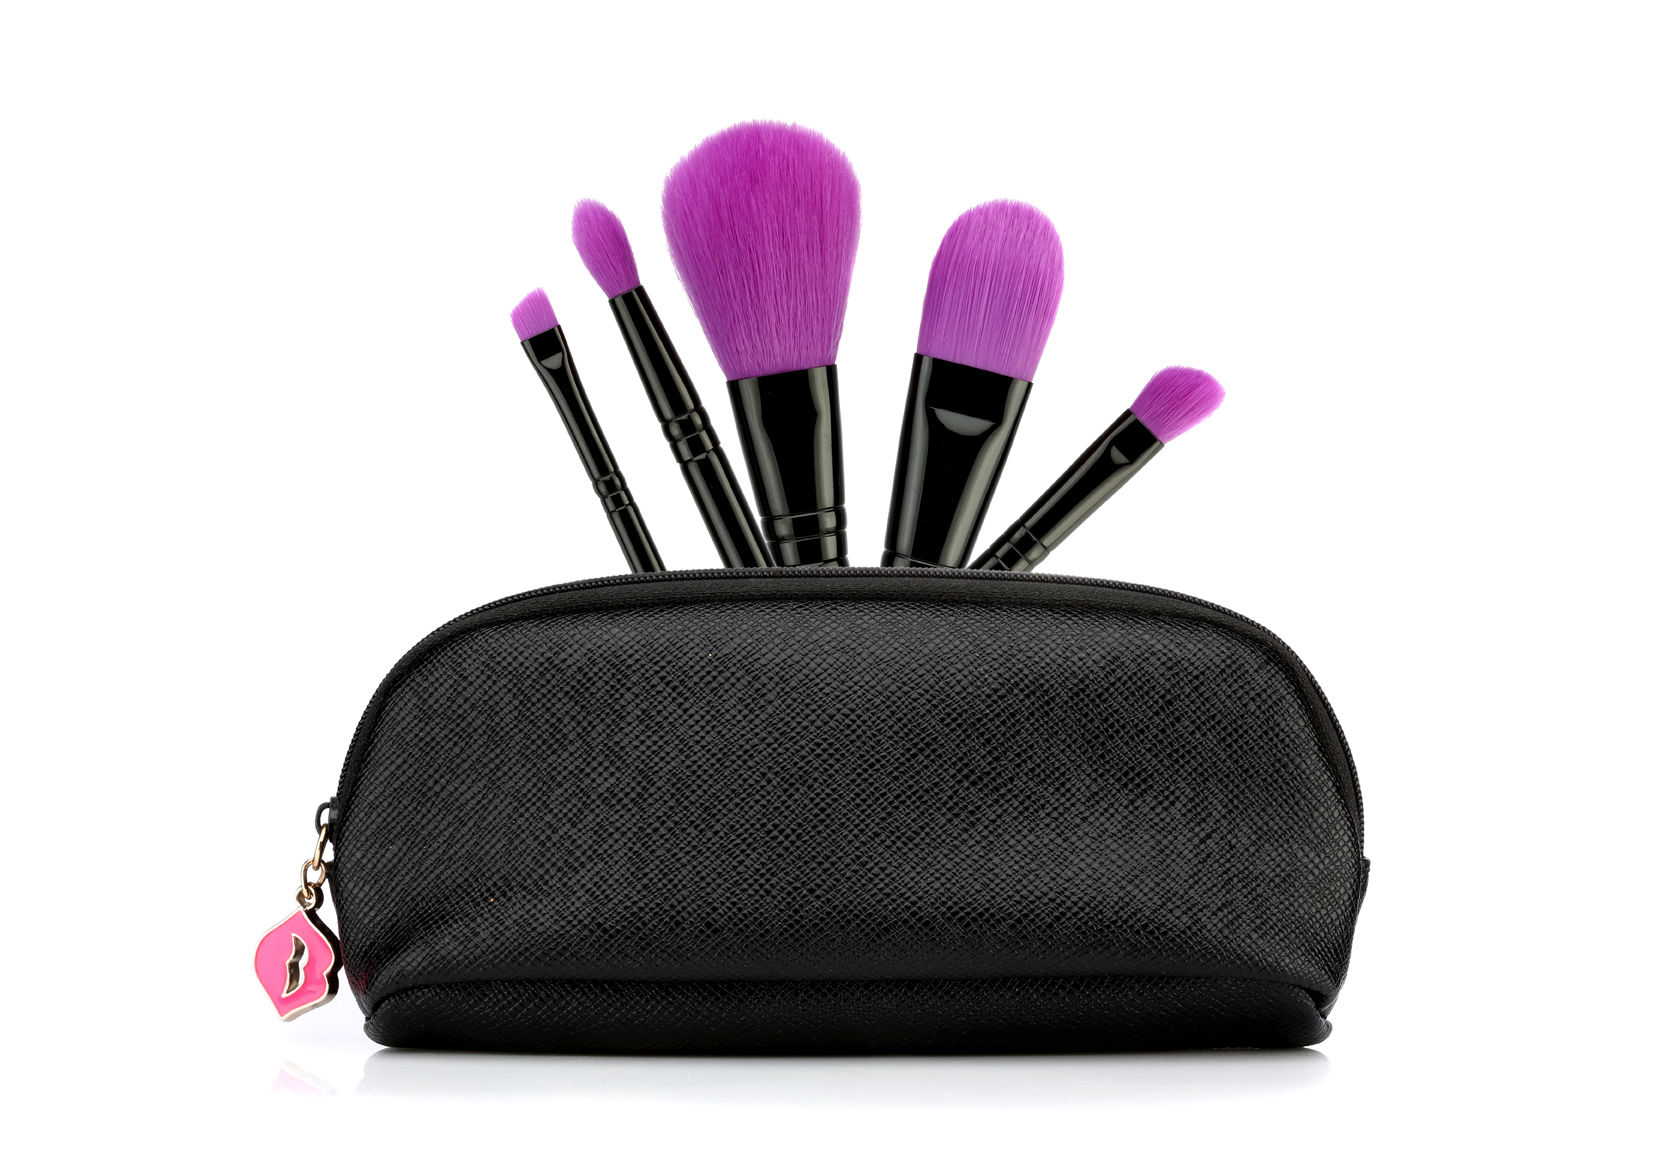 ColorBar On the Go Brush Kit Lulu Meets World Beauty by Lumen Beltran